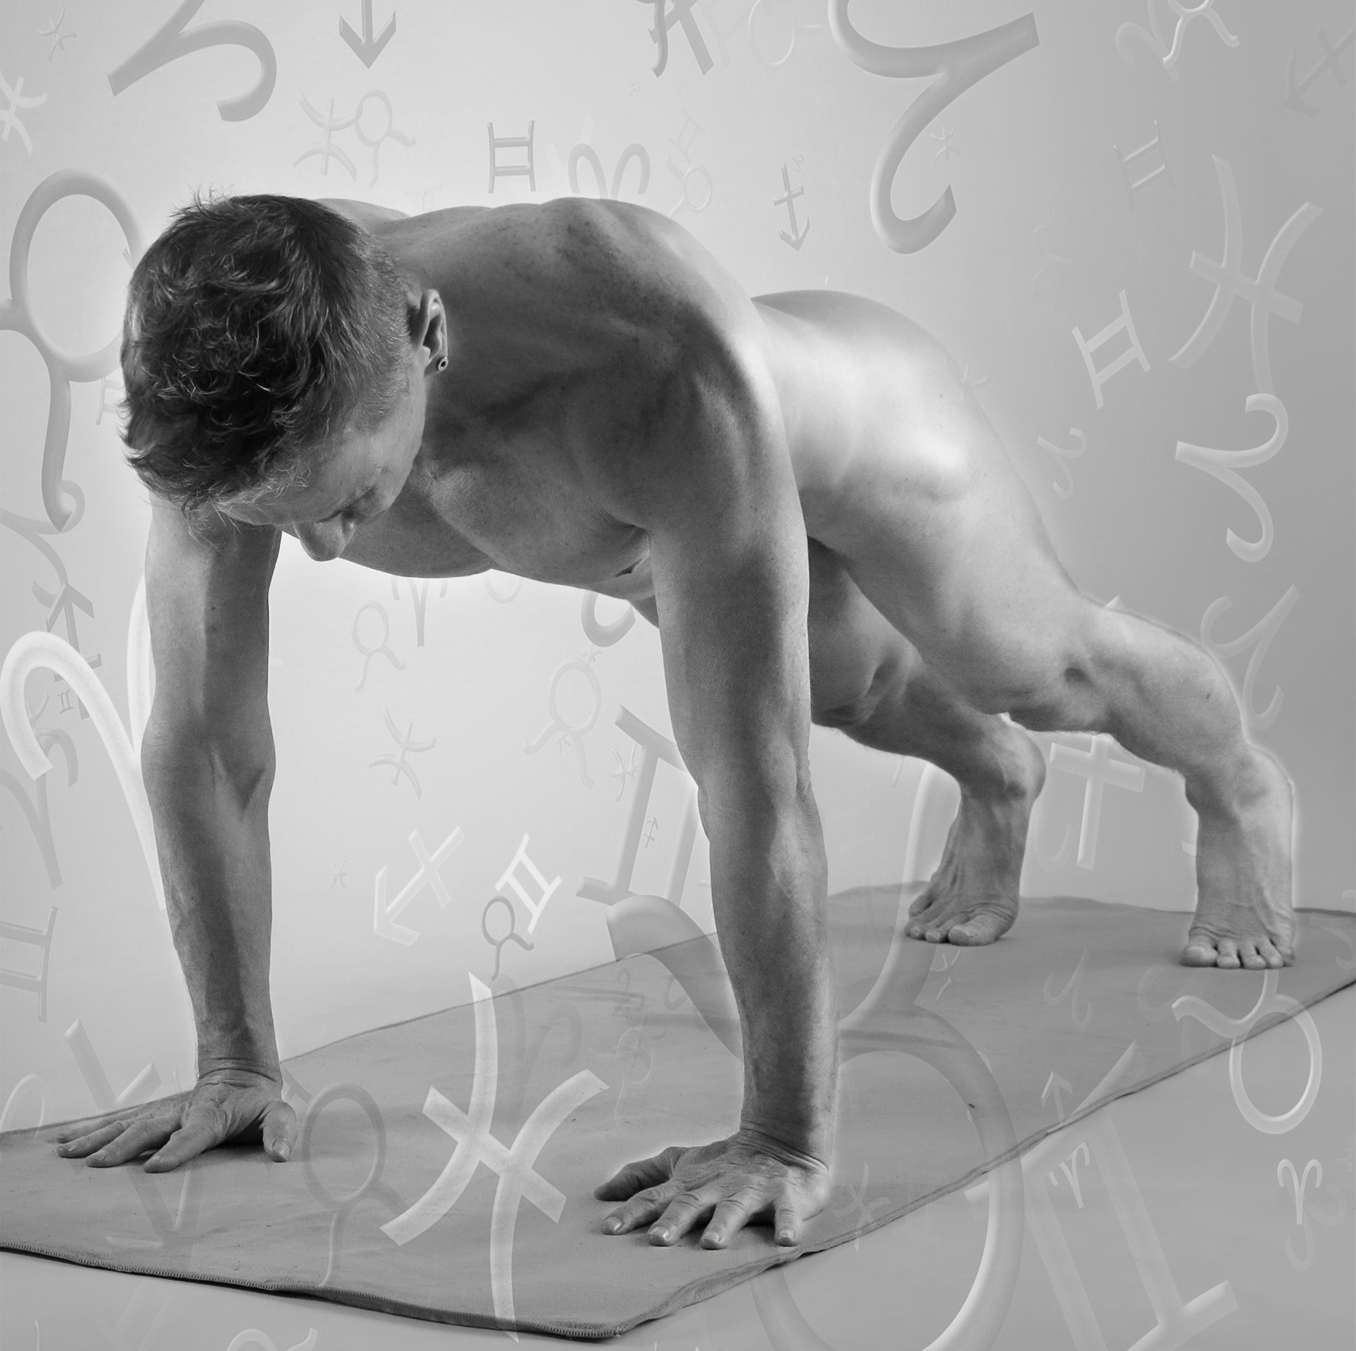 Naked yoga or the art of owning your body 36